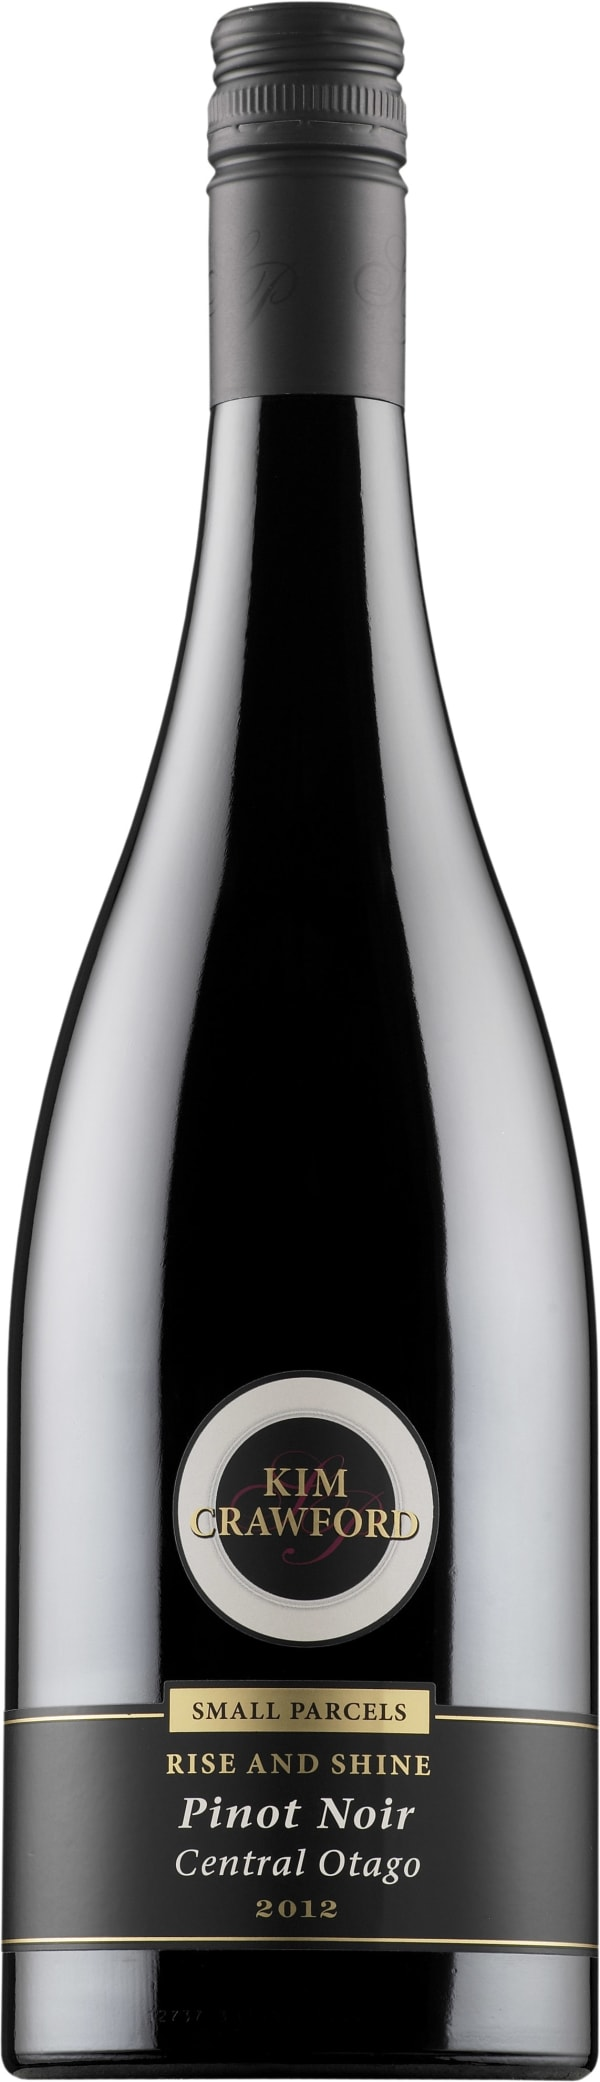 Kim Crawford Rise and Shine Pinot Noir 2013